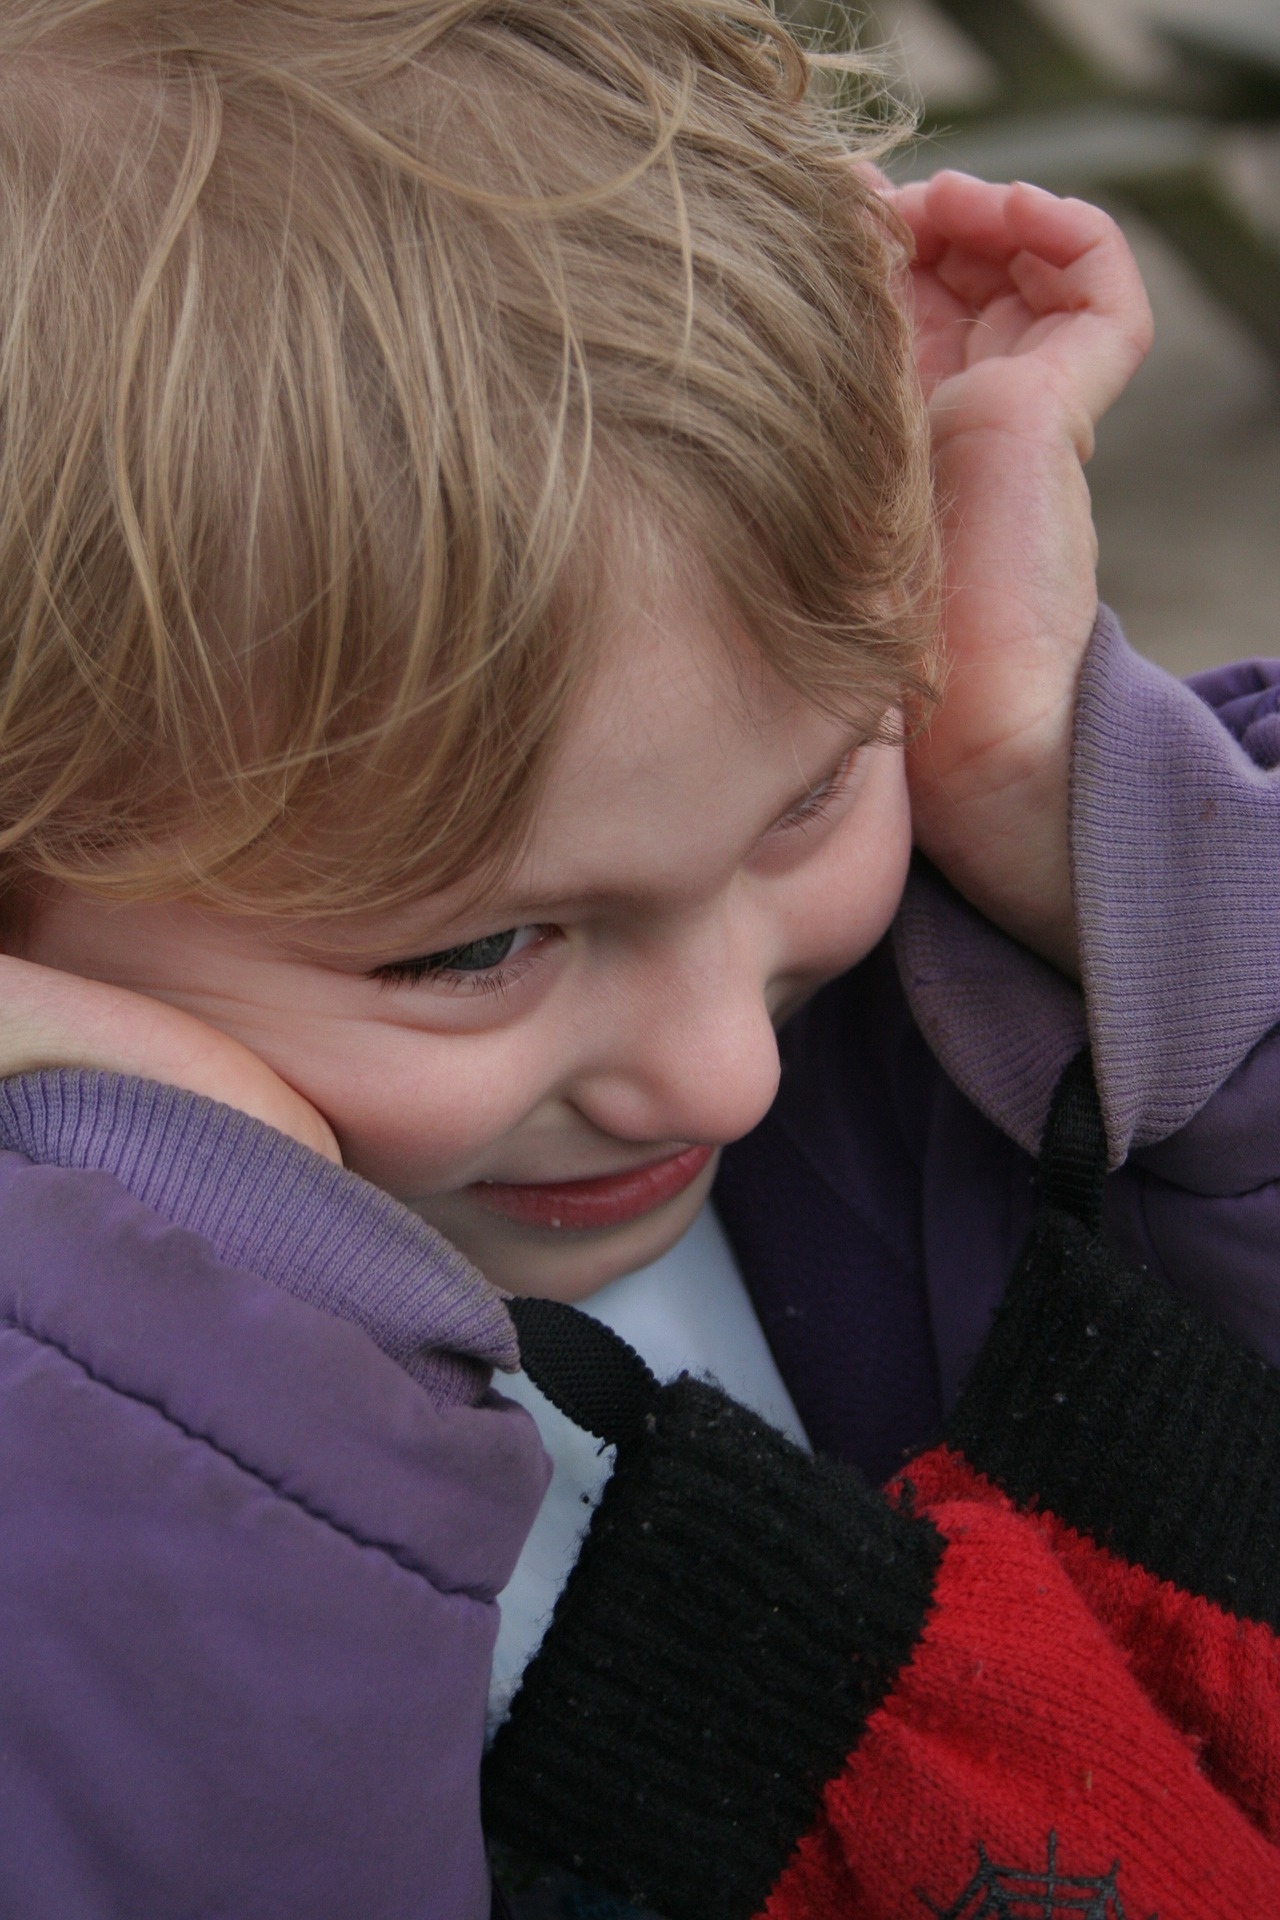 ABA Therapy - A Young Girl Covering Her Ears